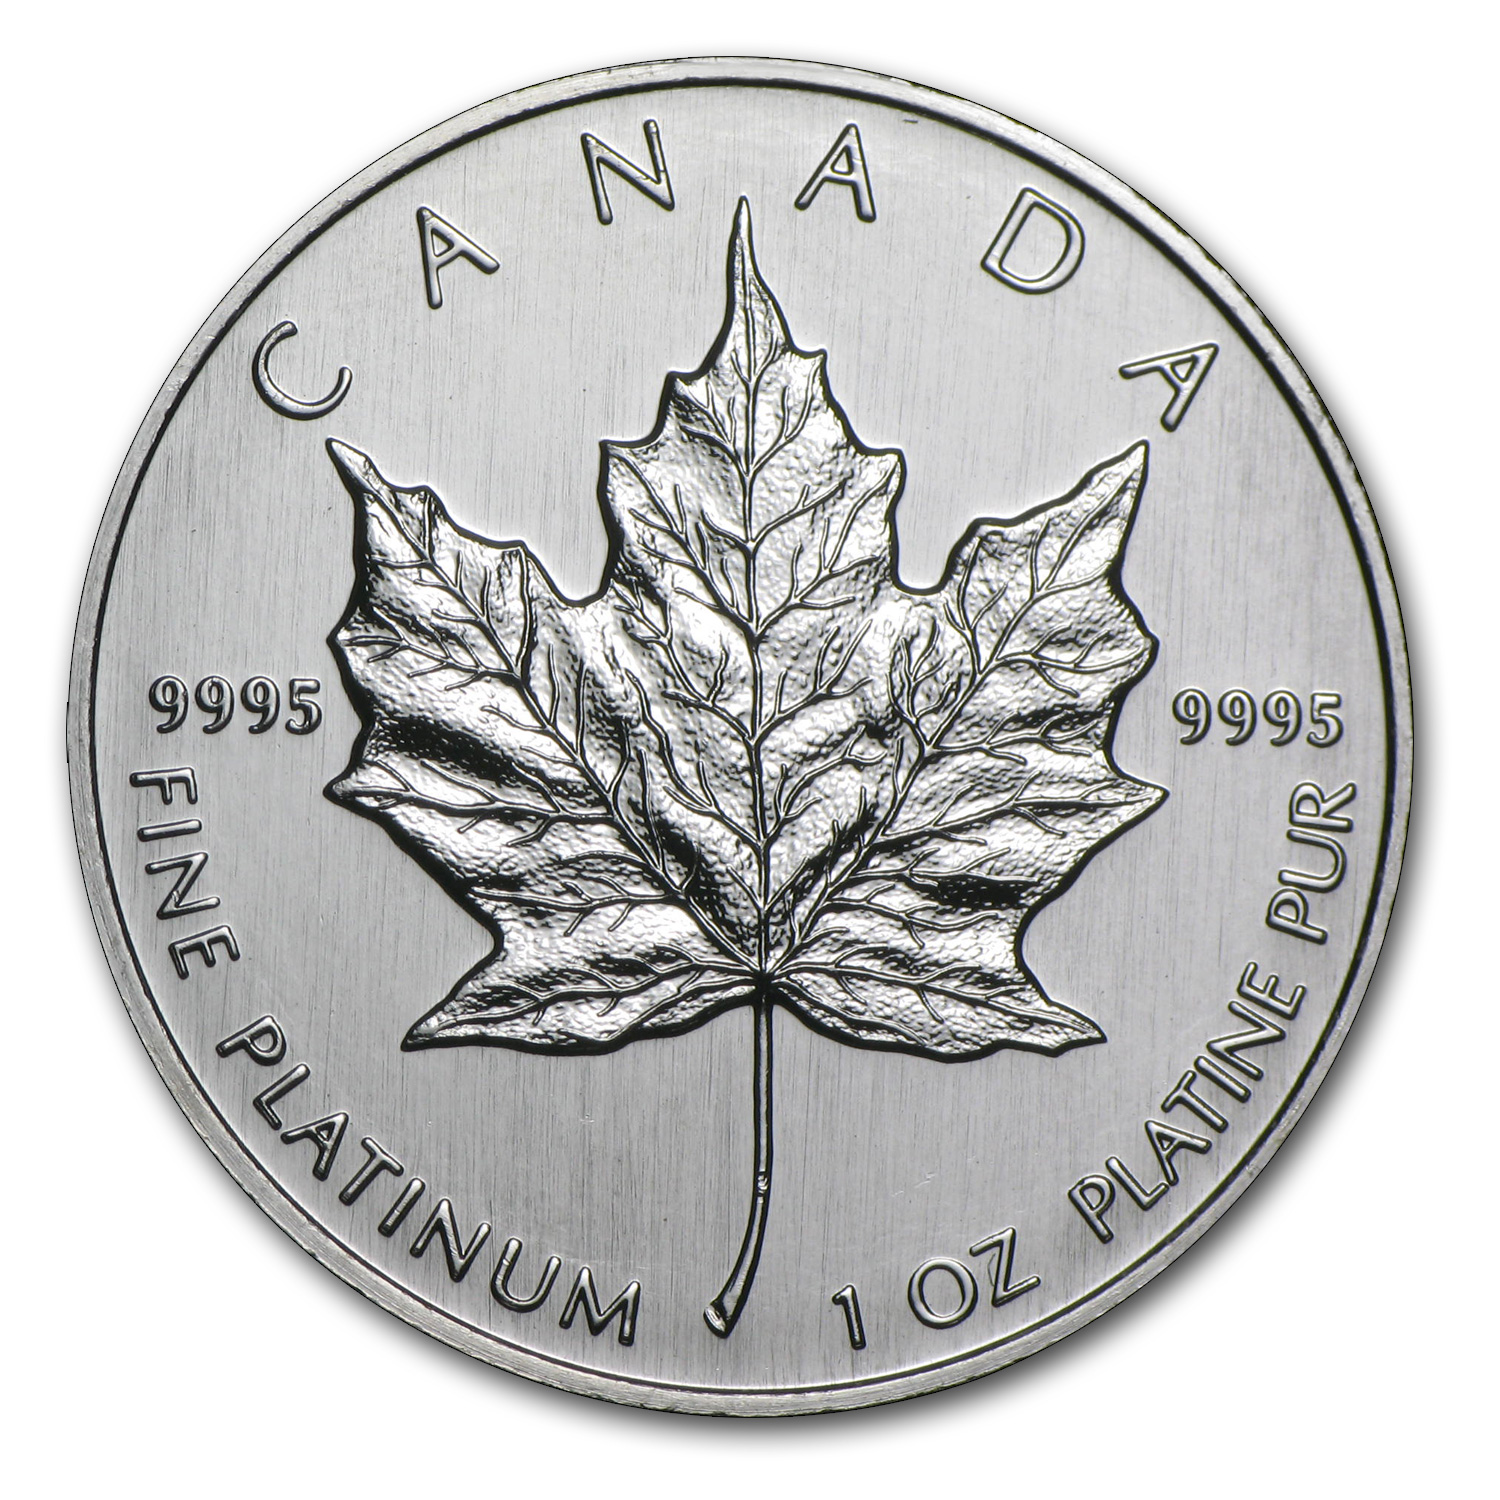 1992 Canada 1 oz Platinum Maple Leaf BU